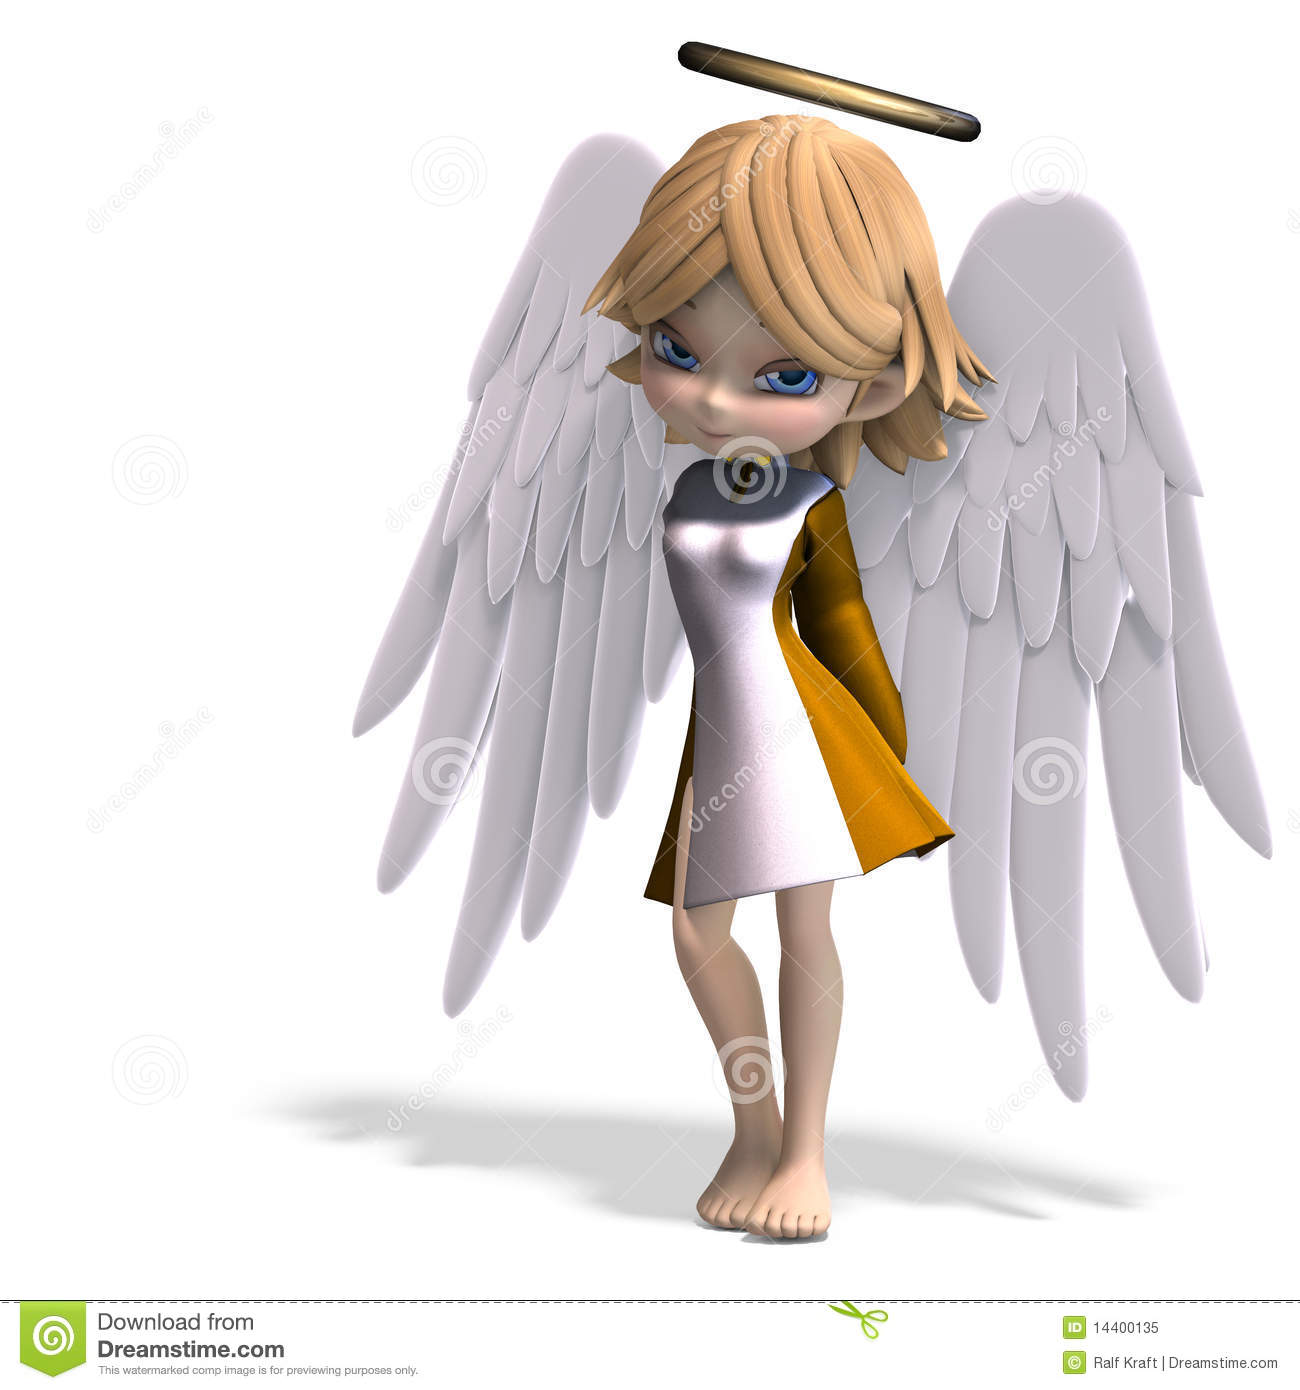 Cute Cartoon Angel With Wings And Halo. 3D Royalty Free Stock Photo ...